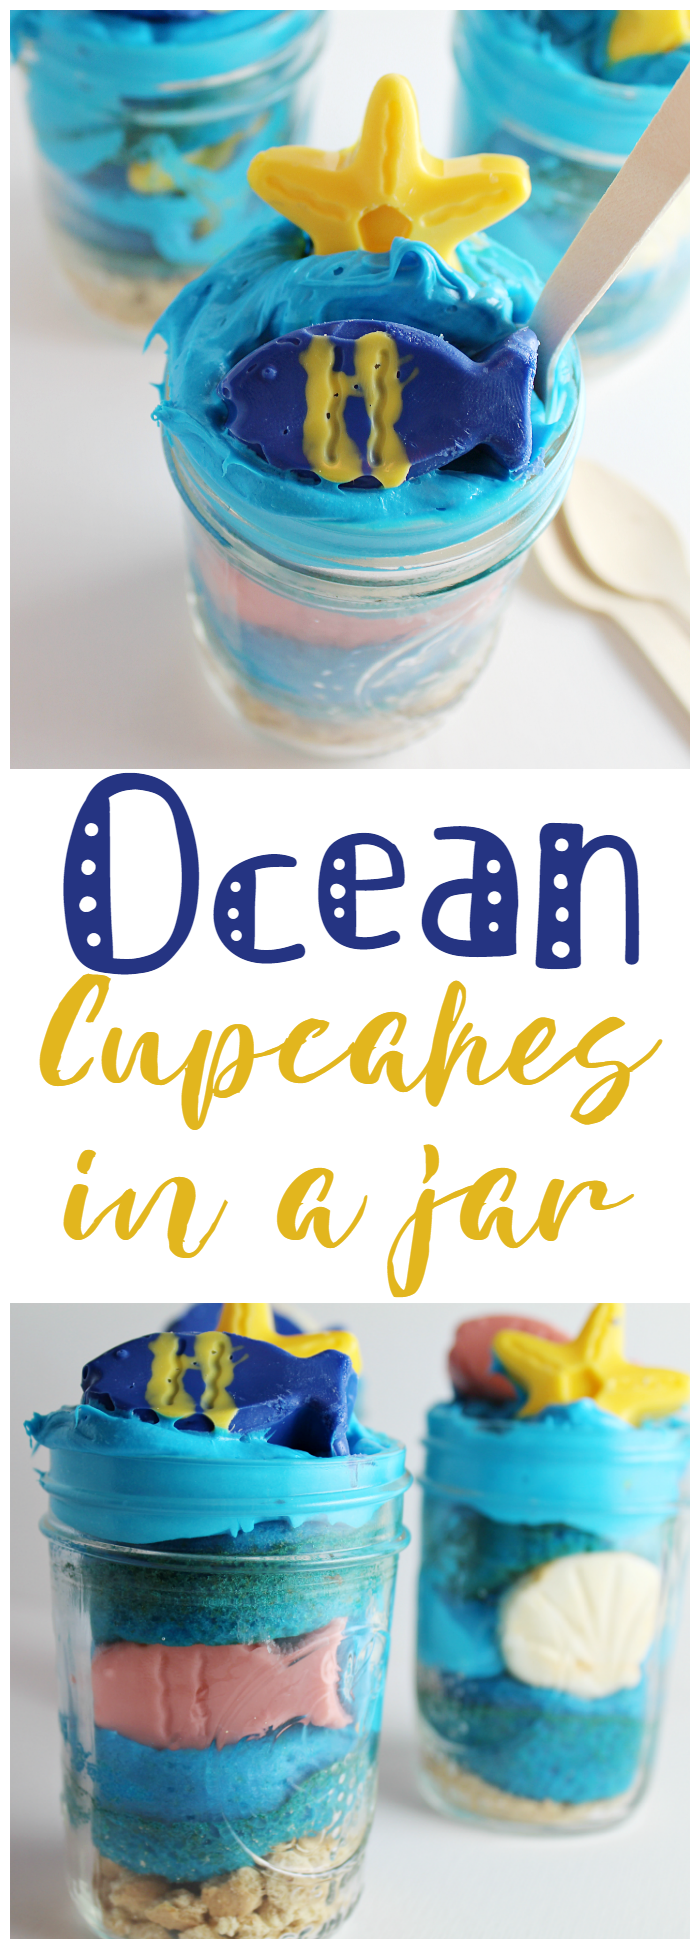 In honor of the Disney PIXAR's Finding Dory release, we put together these super simple, yet super cute, Ocean Cupcakes in a Jar.